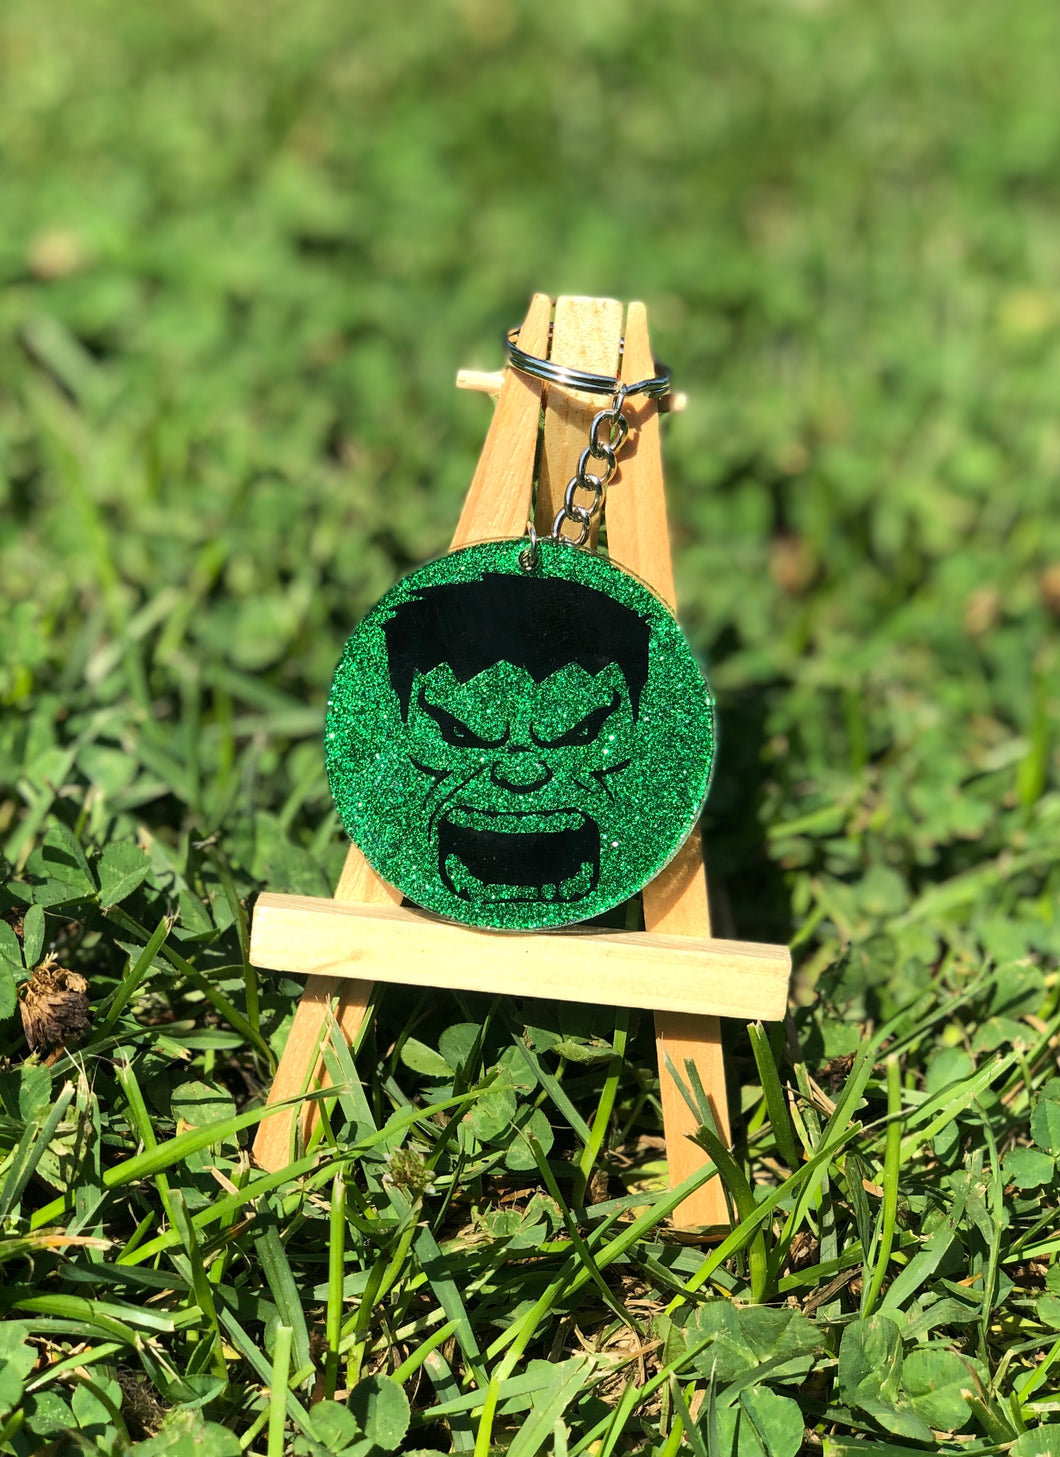 Hulk Key Chain